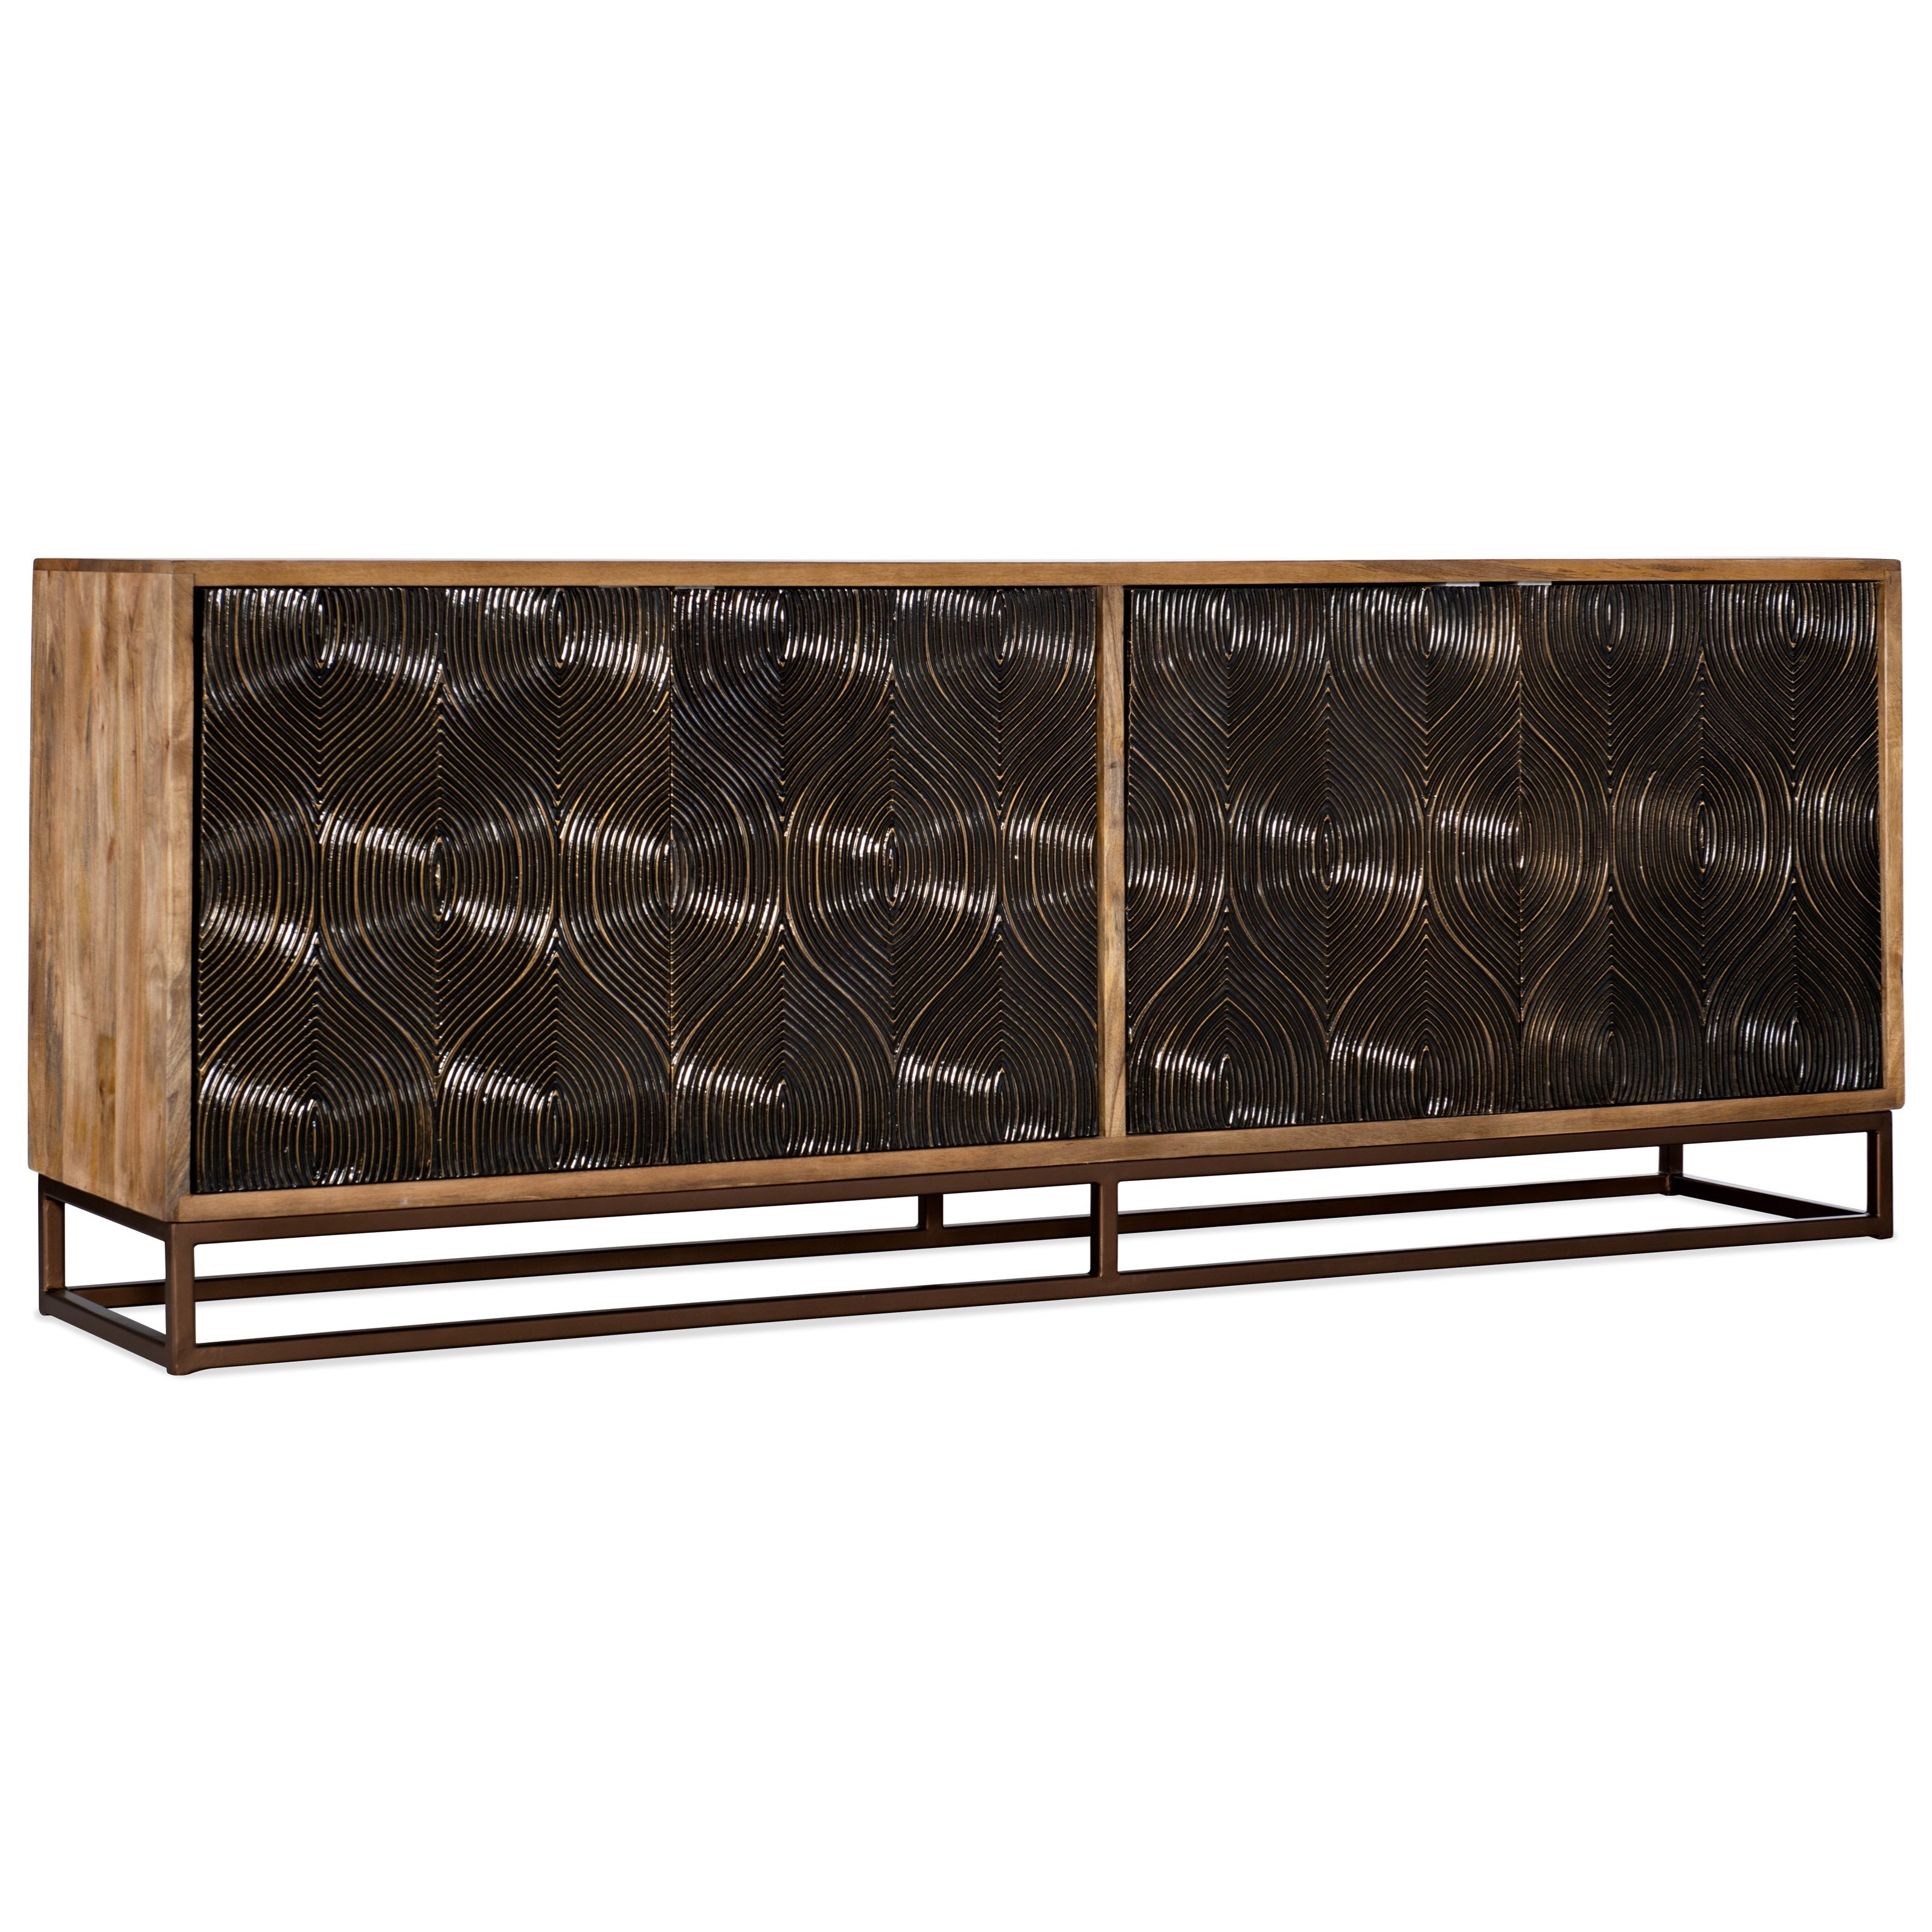 Living Room Accents Swirl Door Entertainment Console at Williams & Kay